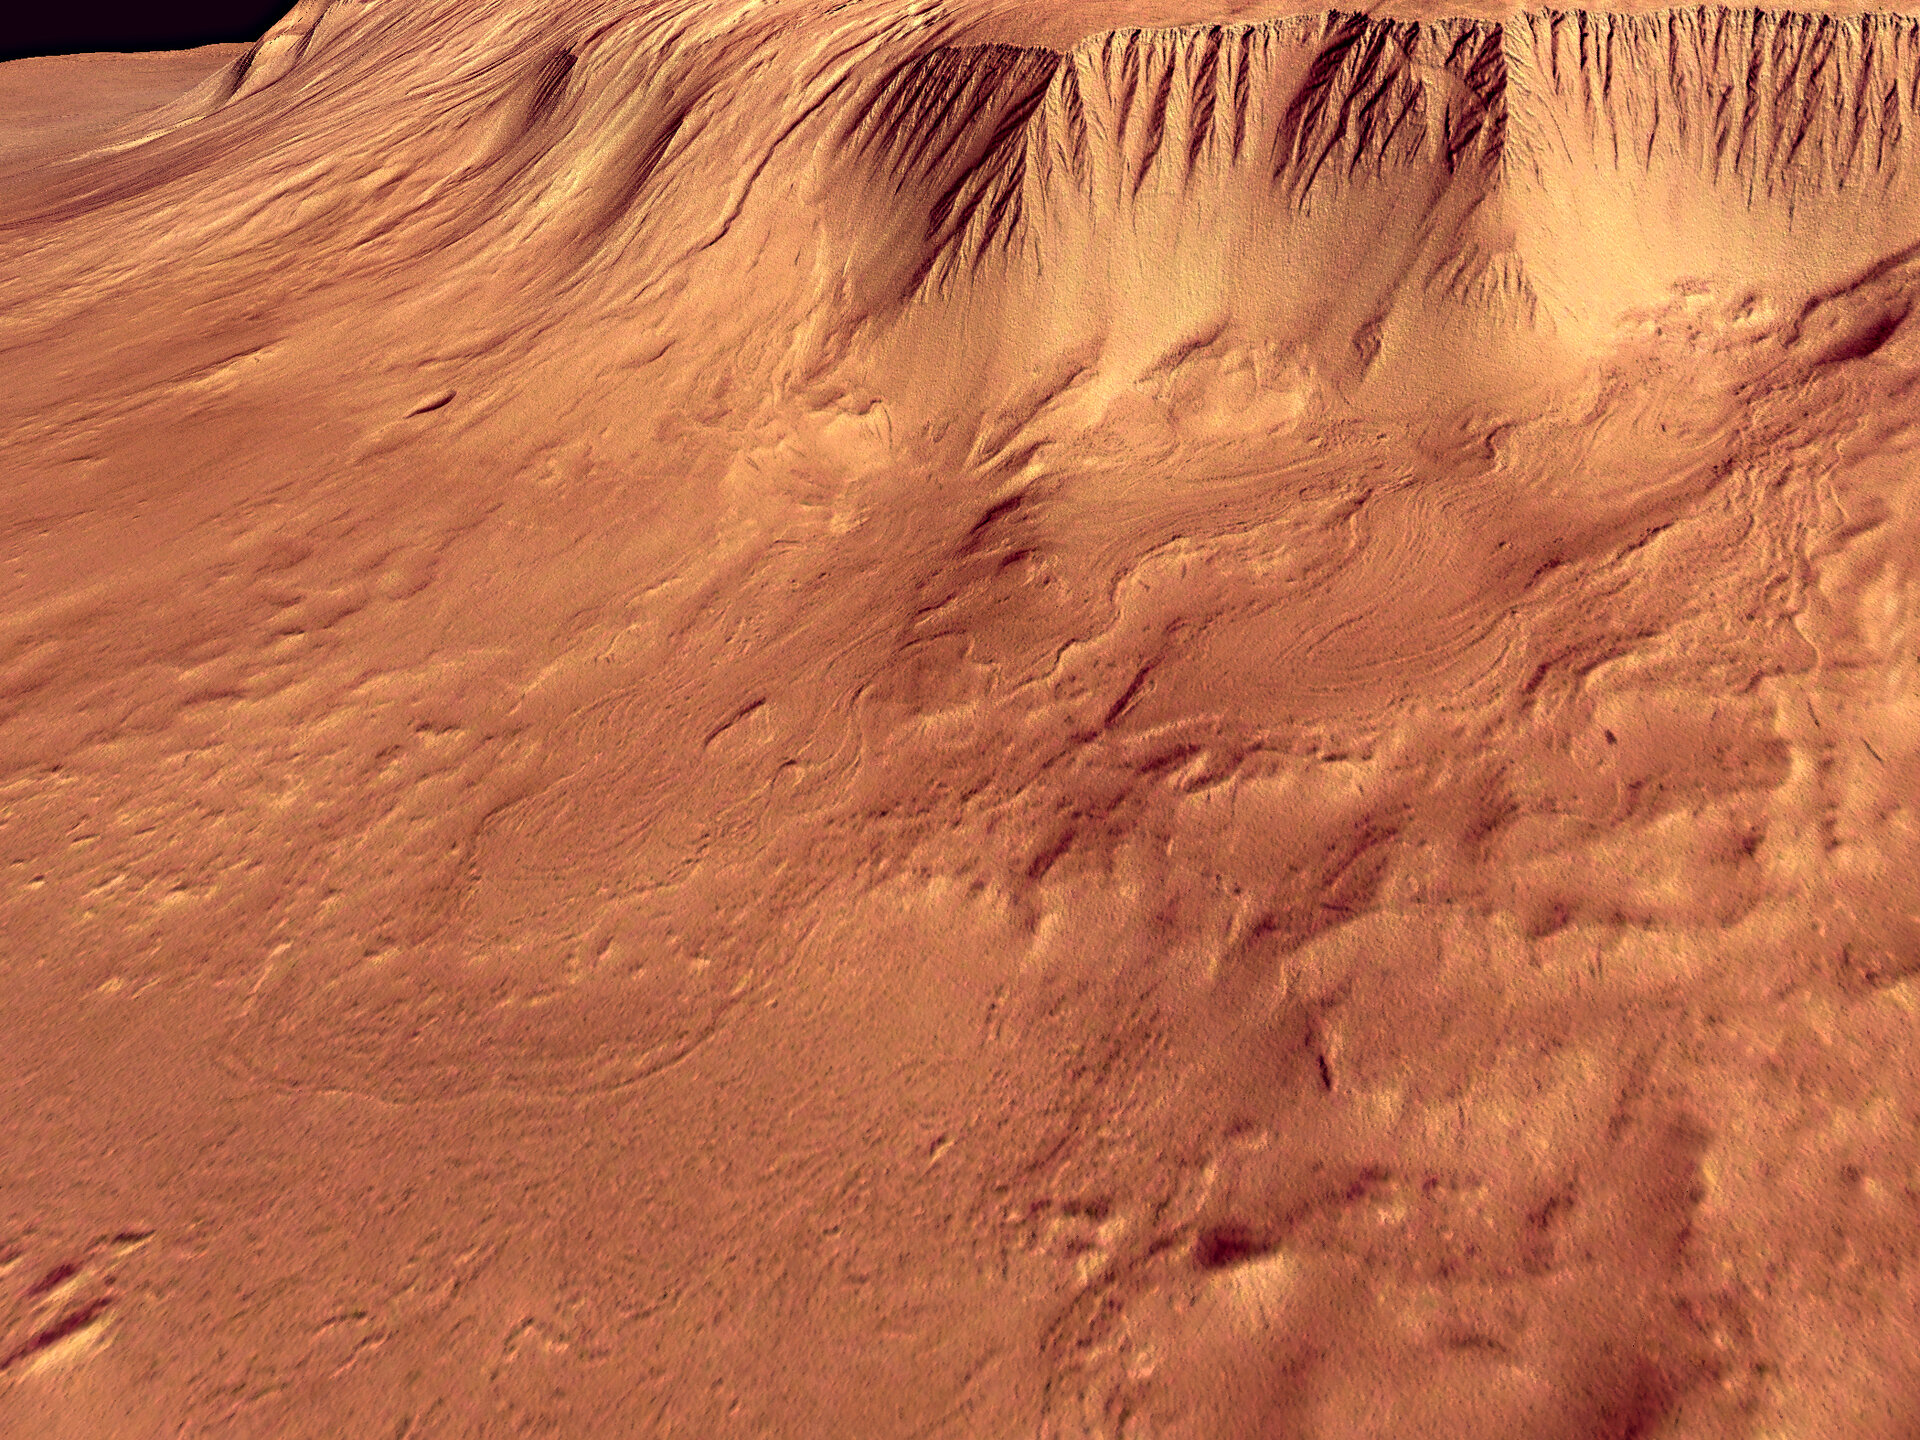 Perspective view of scarp around Olympus Mons